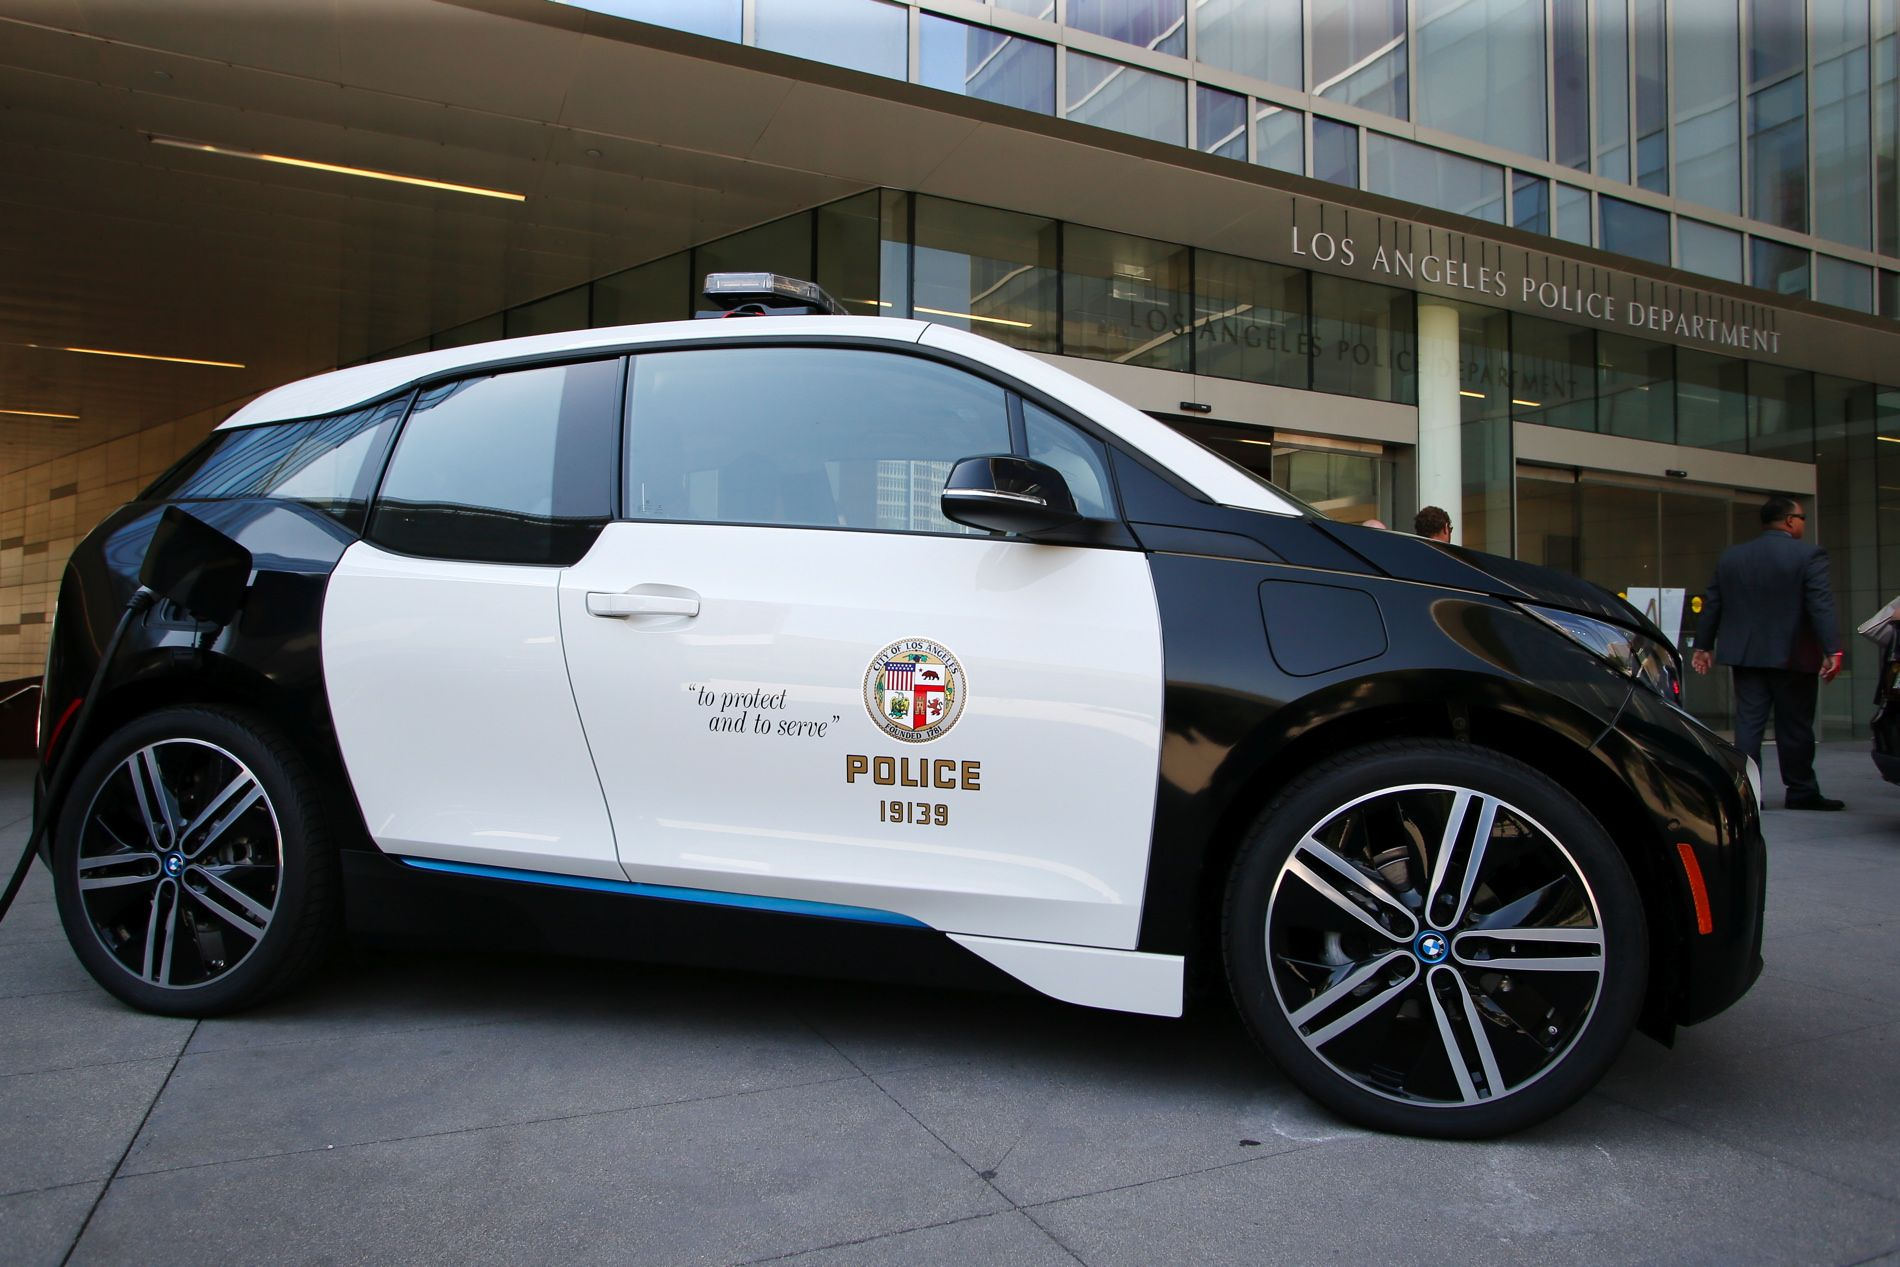 Bmw To Supply The Los Angeles Police Department With 100 Bmw I3 Electric Vehicles Bmw I3 Bmw Bmw I3 Electric